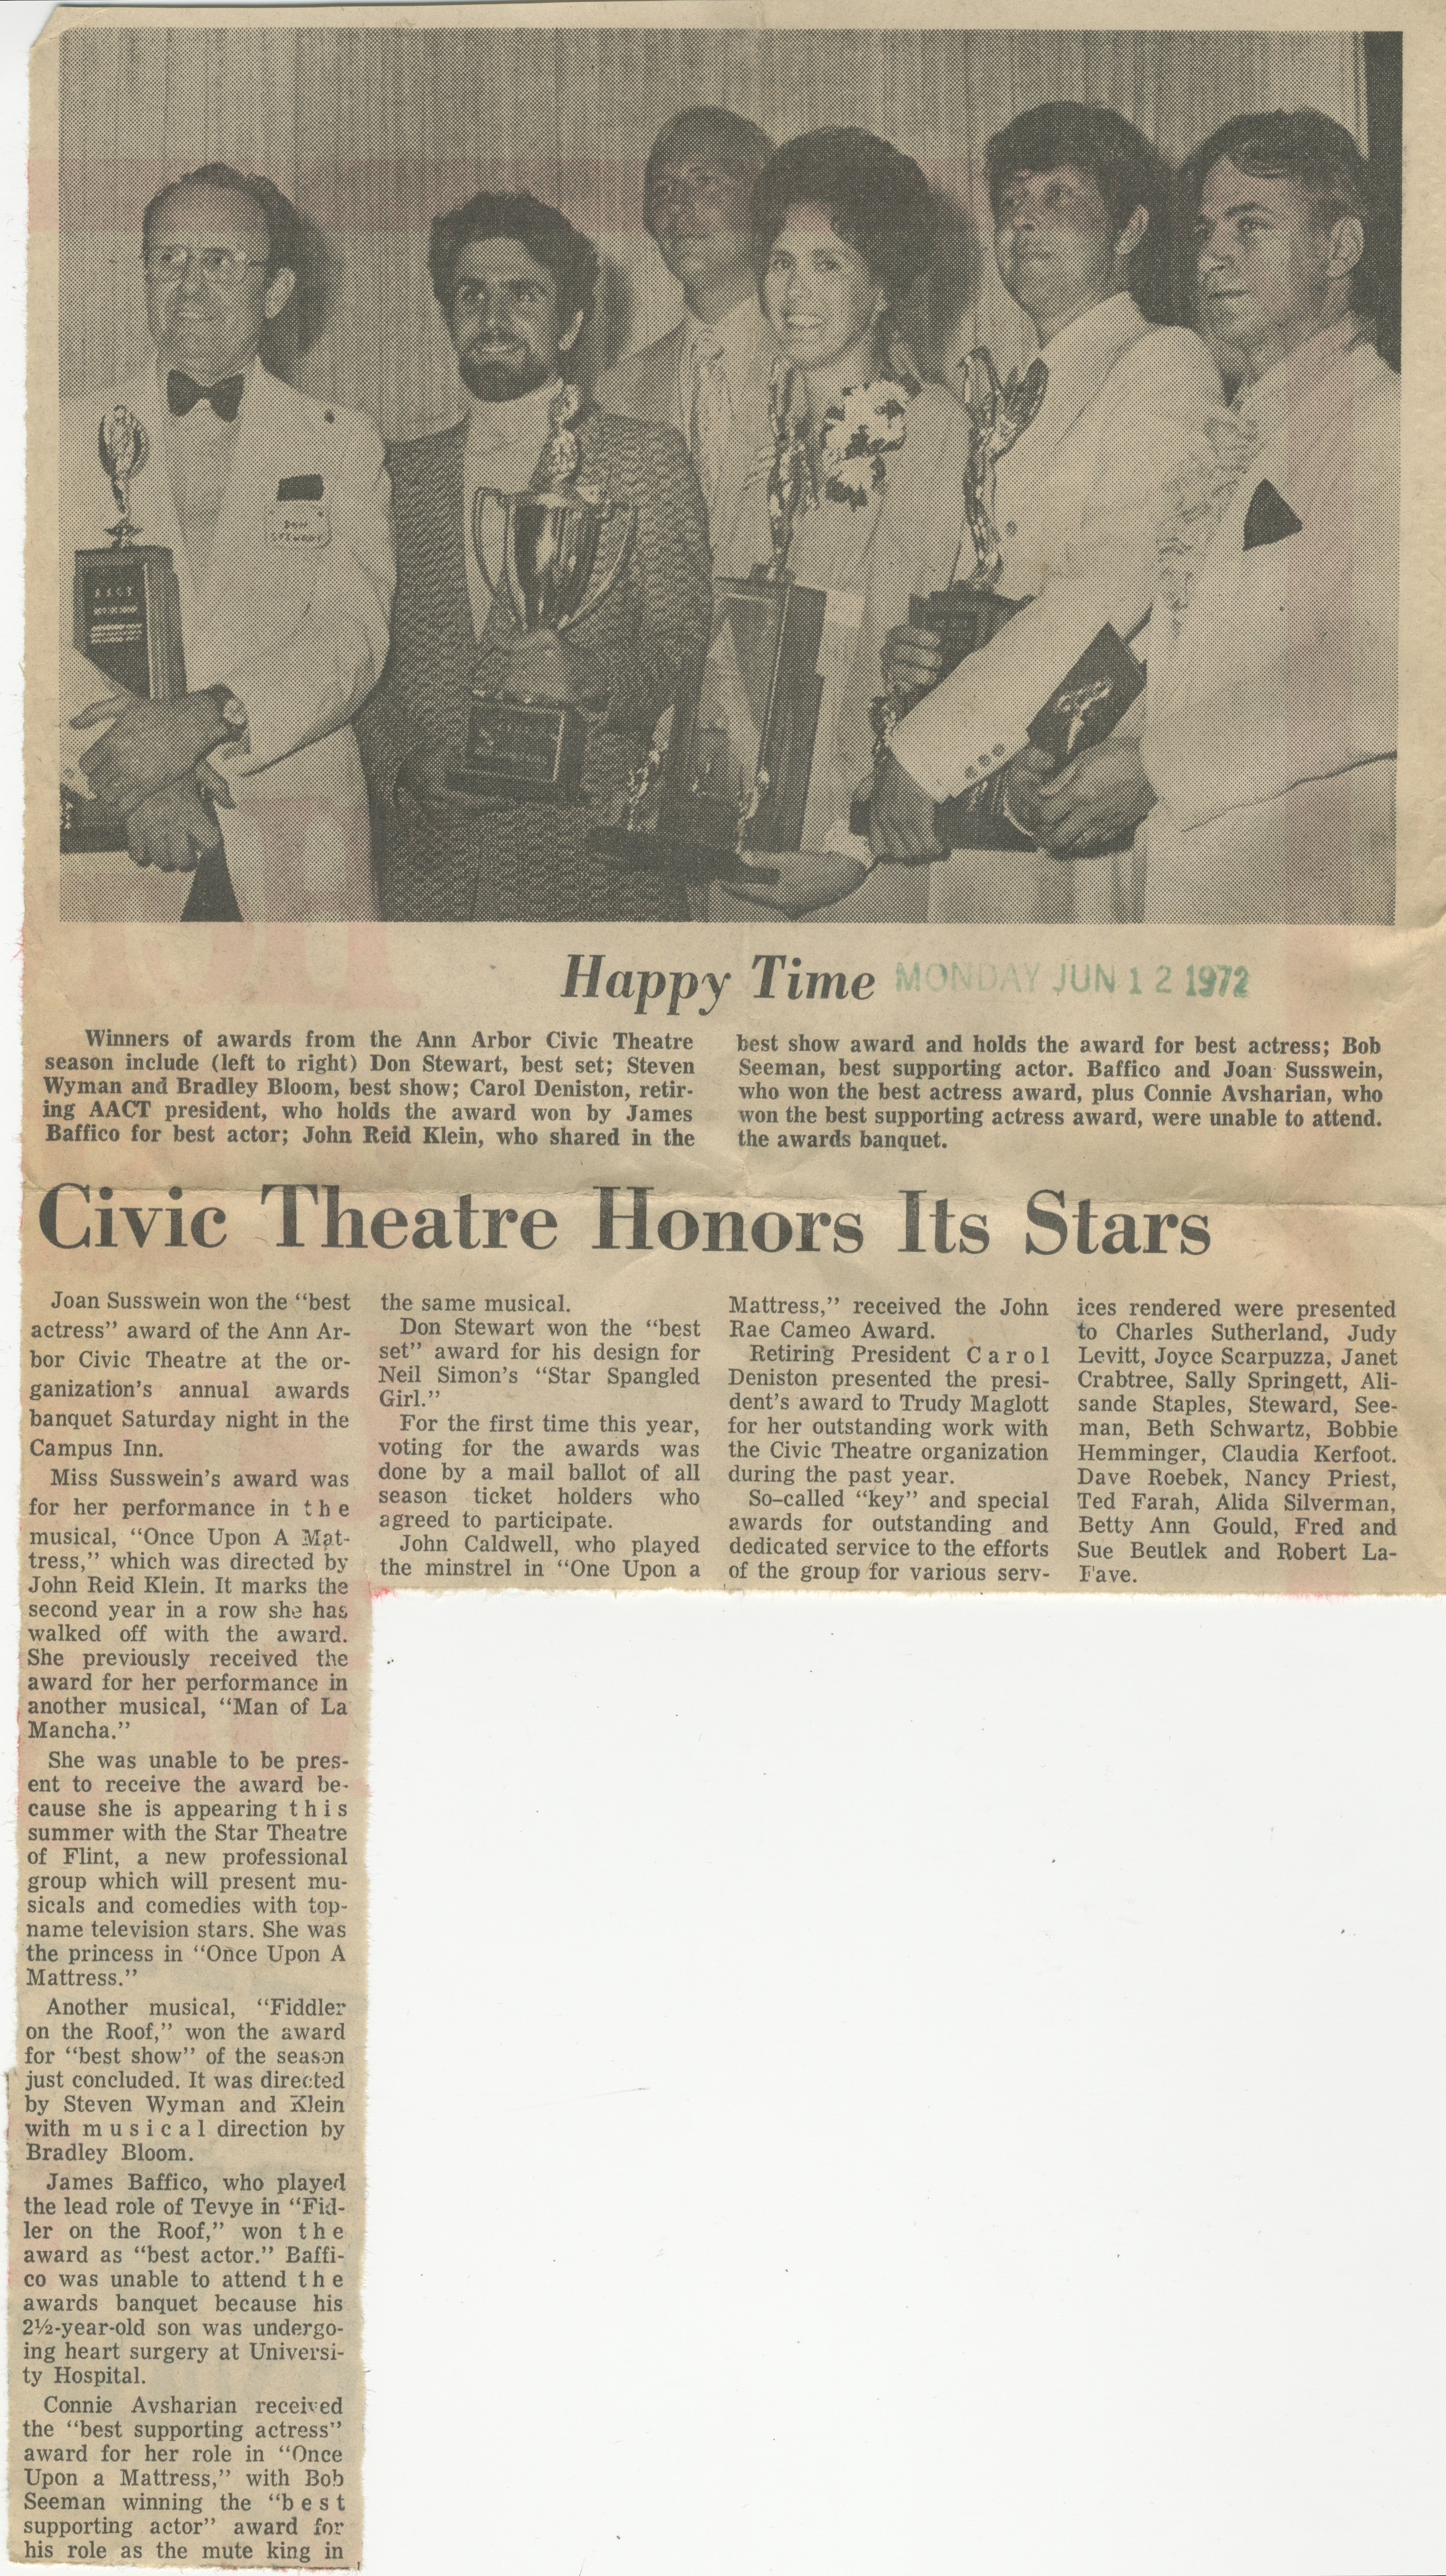 Civic Theatre Honors Its Stars image